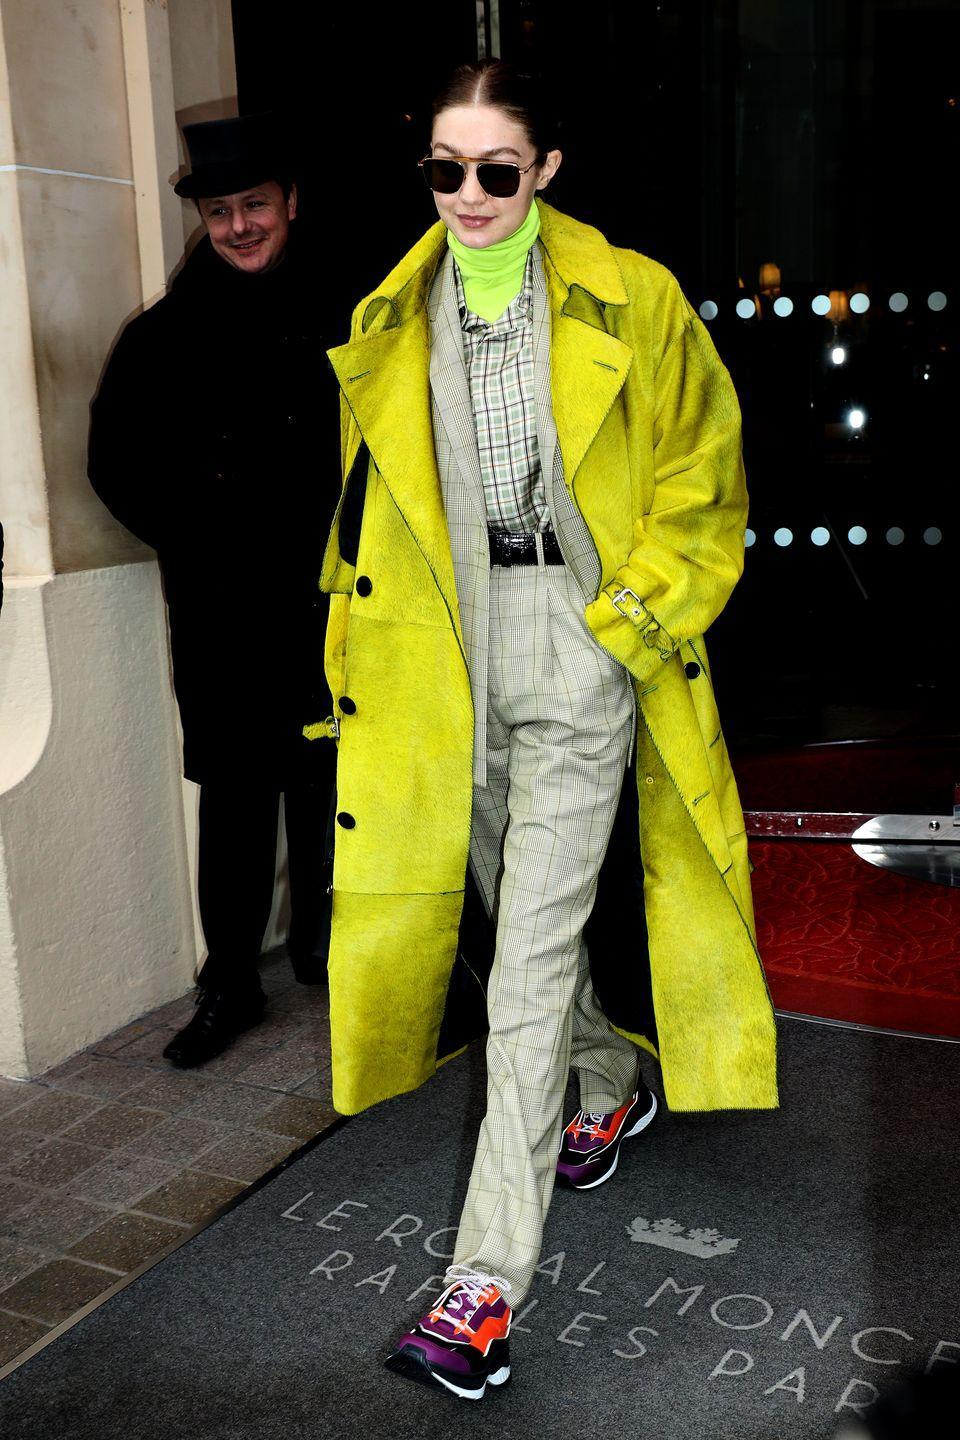 <p>Gigi has been blessed with the otherworldly ability to pull off even the wildest outfit. She literally wore neon, on plaid, on more plaid, on more neon, with a statement shoe – AND PULLED IT OFF. How?! Just how?!?</p>